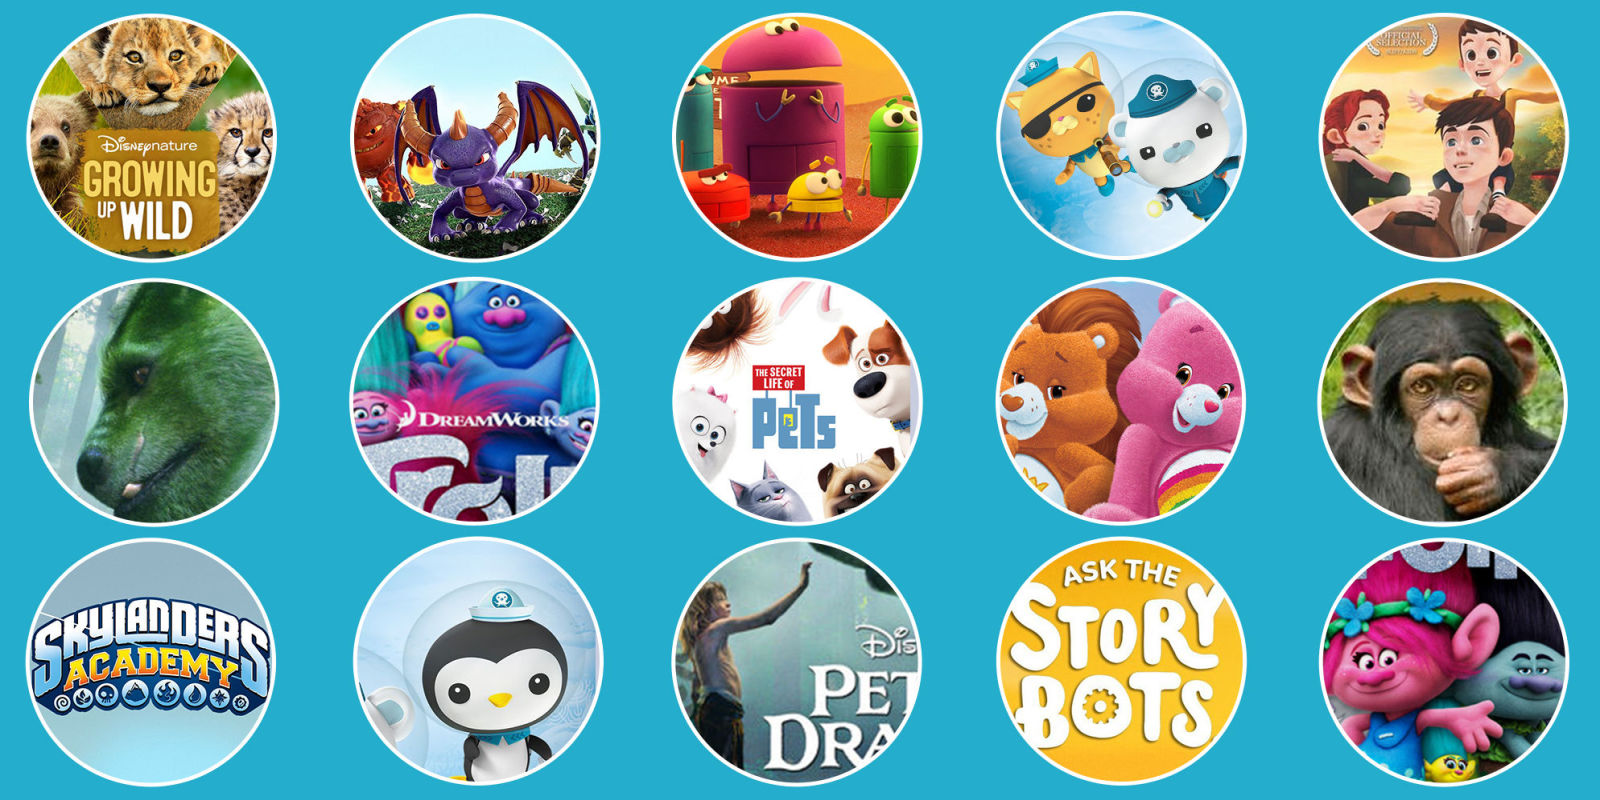 Coolest Living Rooms 12 Best Tv Shows And Movies On Netflix For Kids Right Now